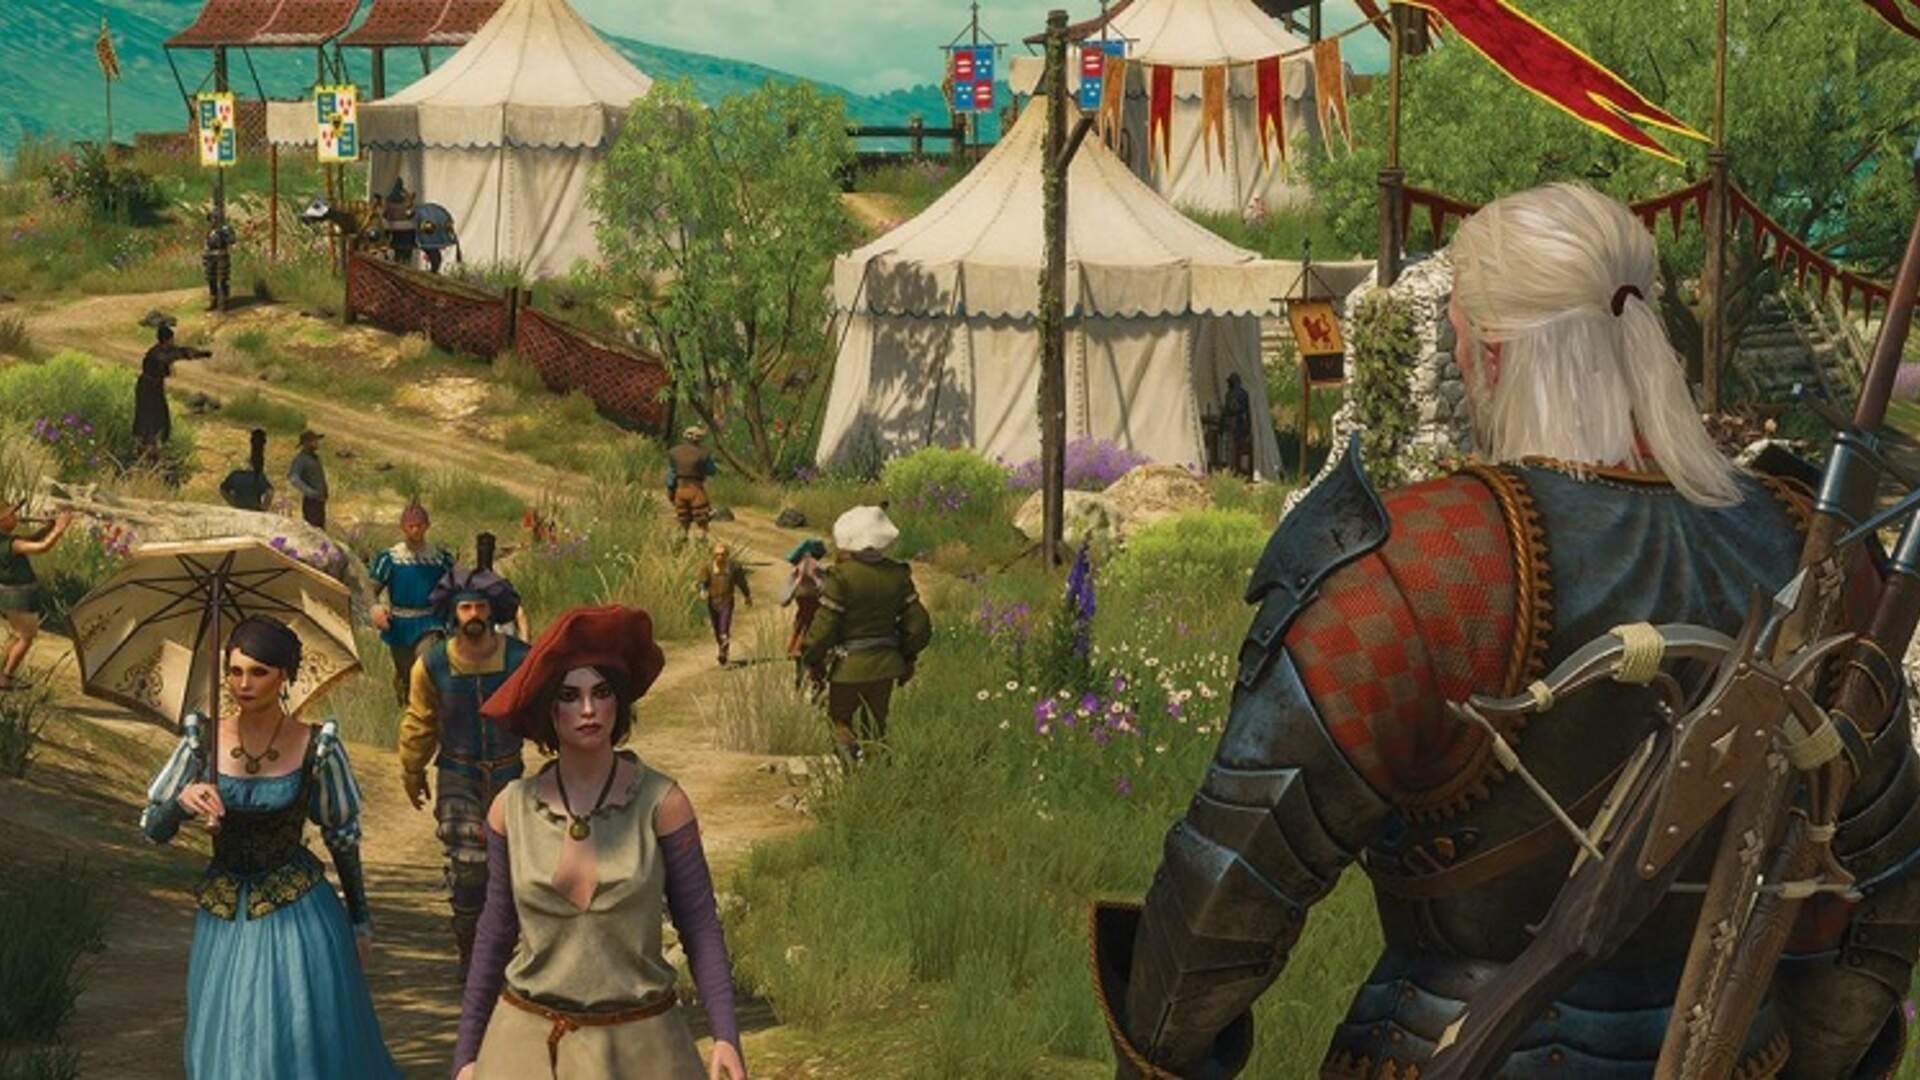 The Witcher 3 - How to Get the Grandmaster Griffin Gear